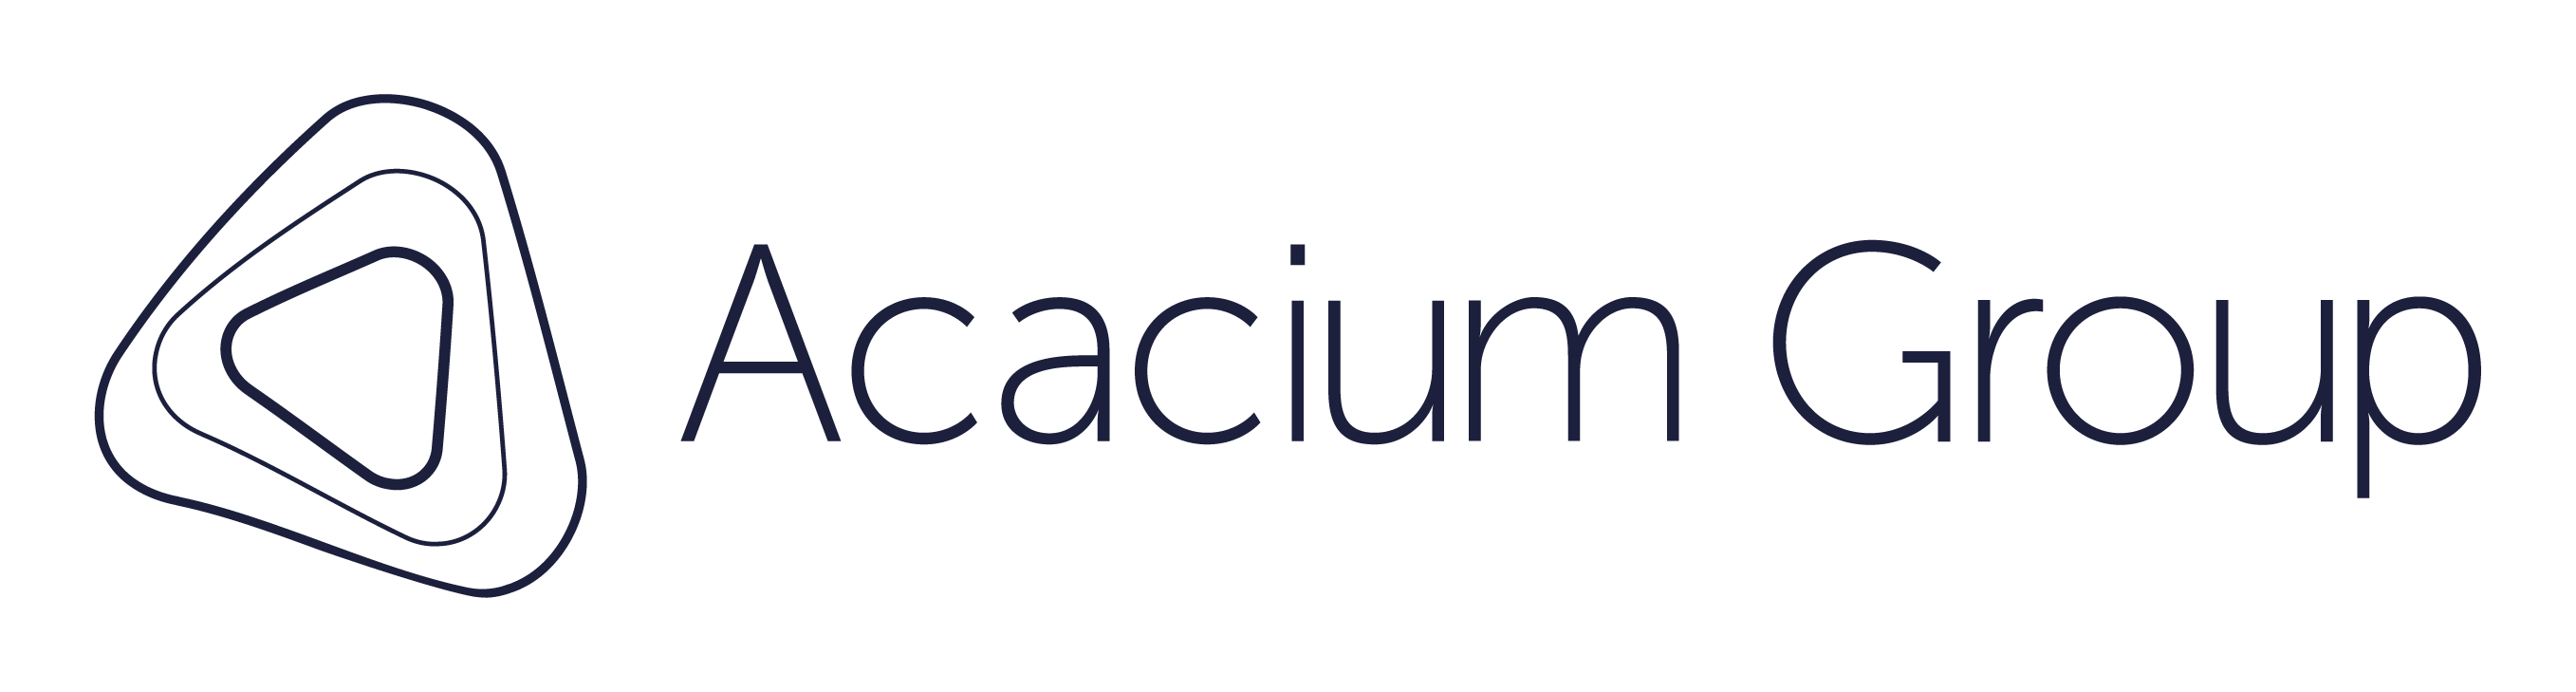 AcaciumGroup_landscape_Logo.ScrubBlue-CMYK_excl zone